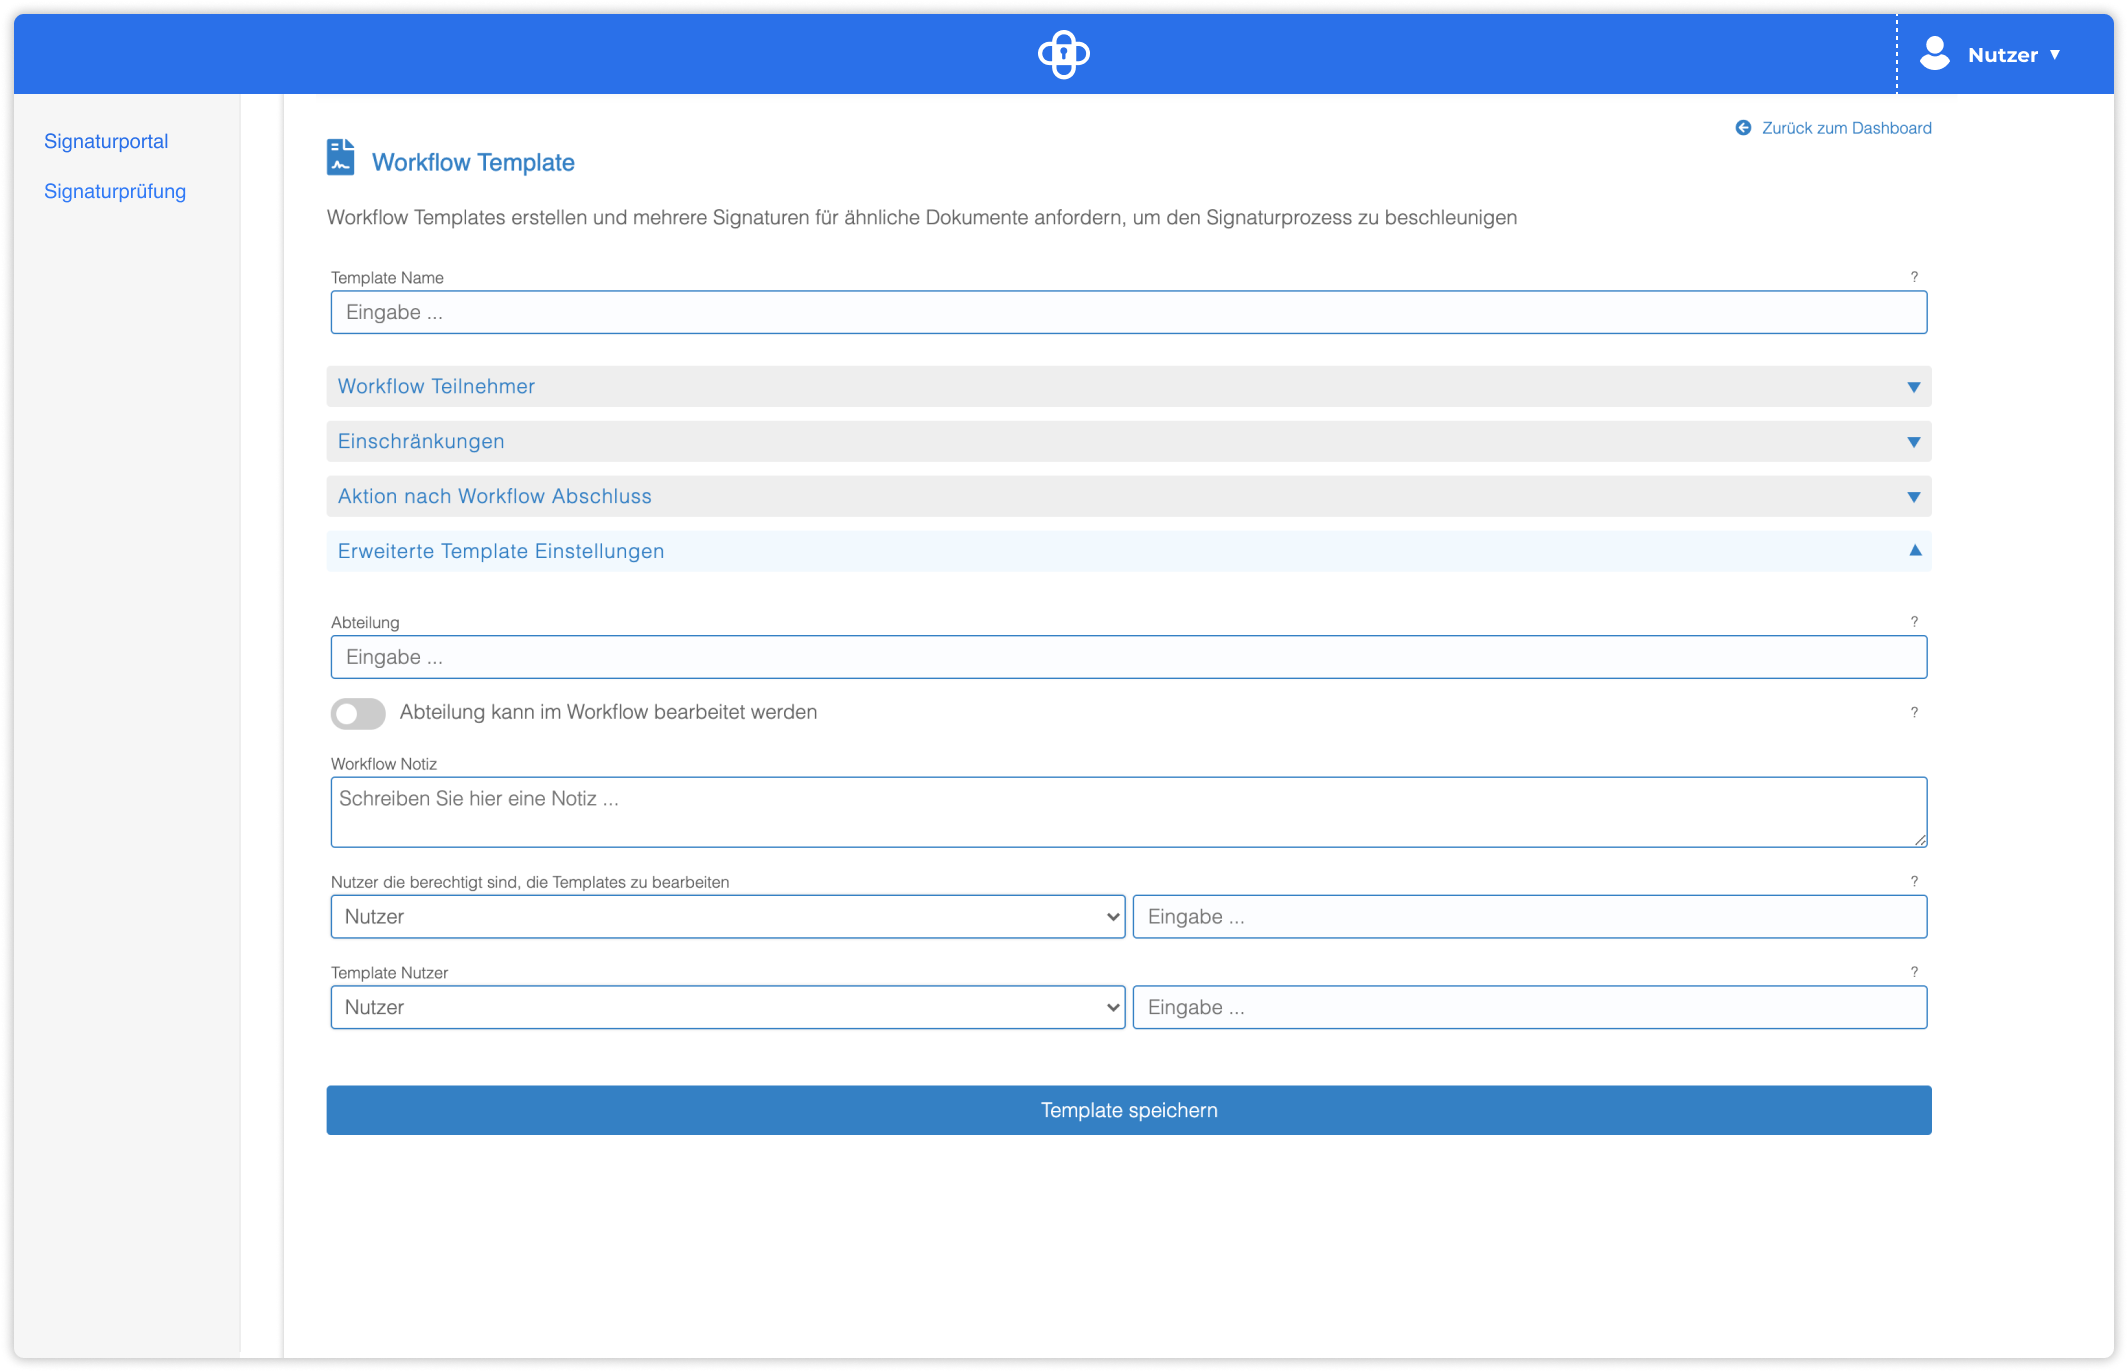 workflow template3